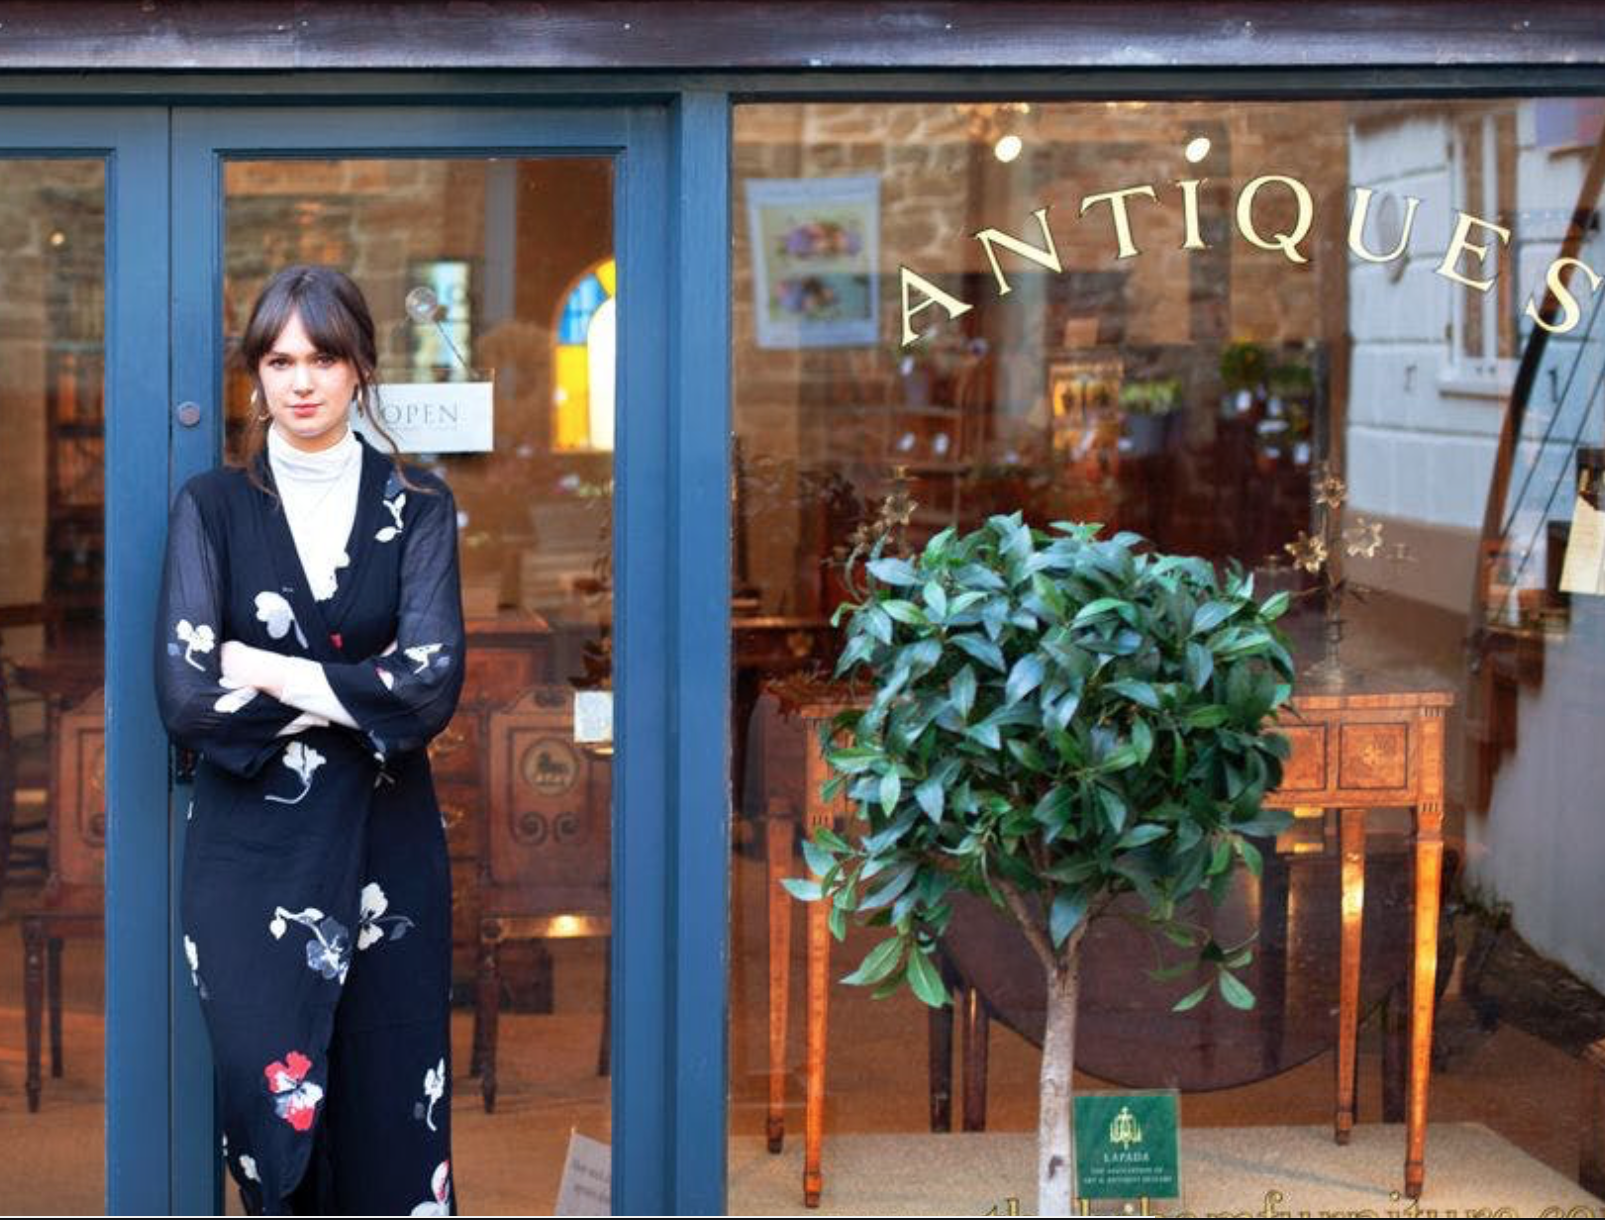 Meet the millennial women dusting down the antiques profession